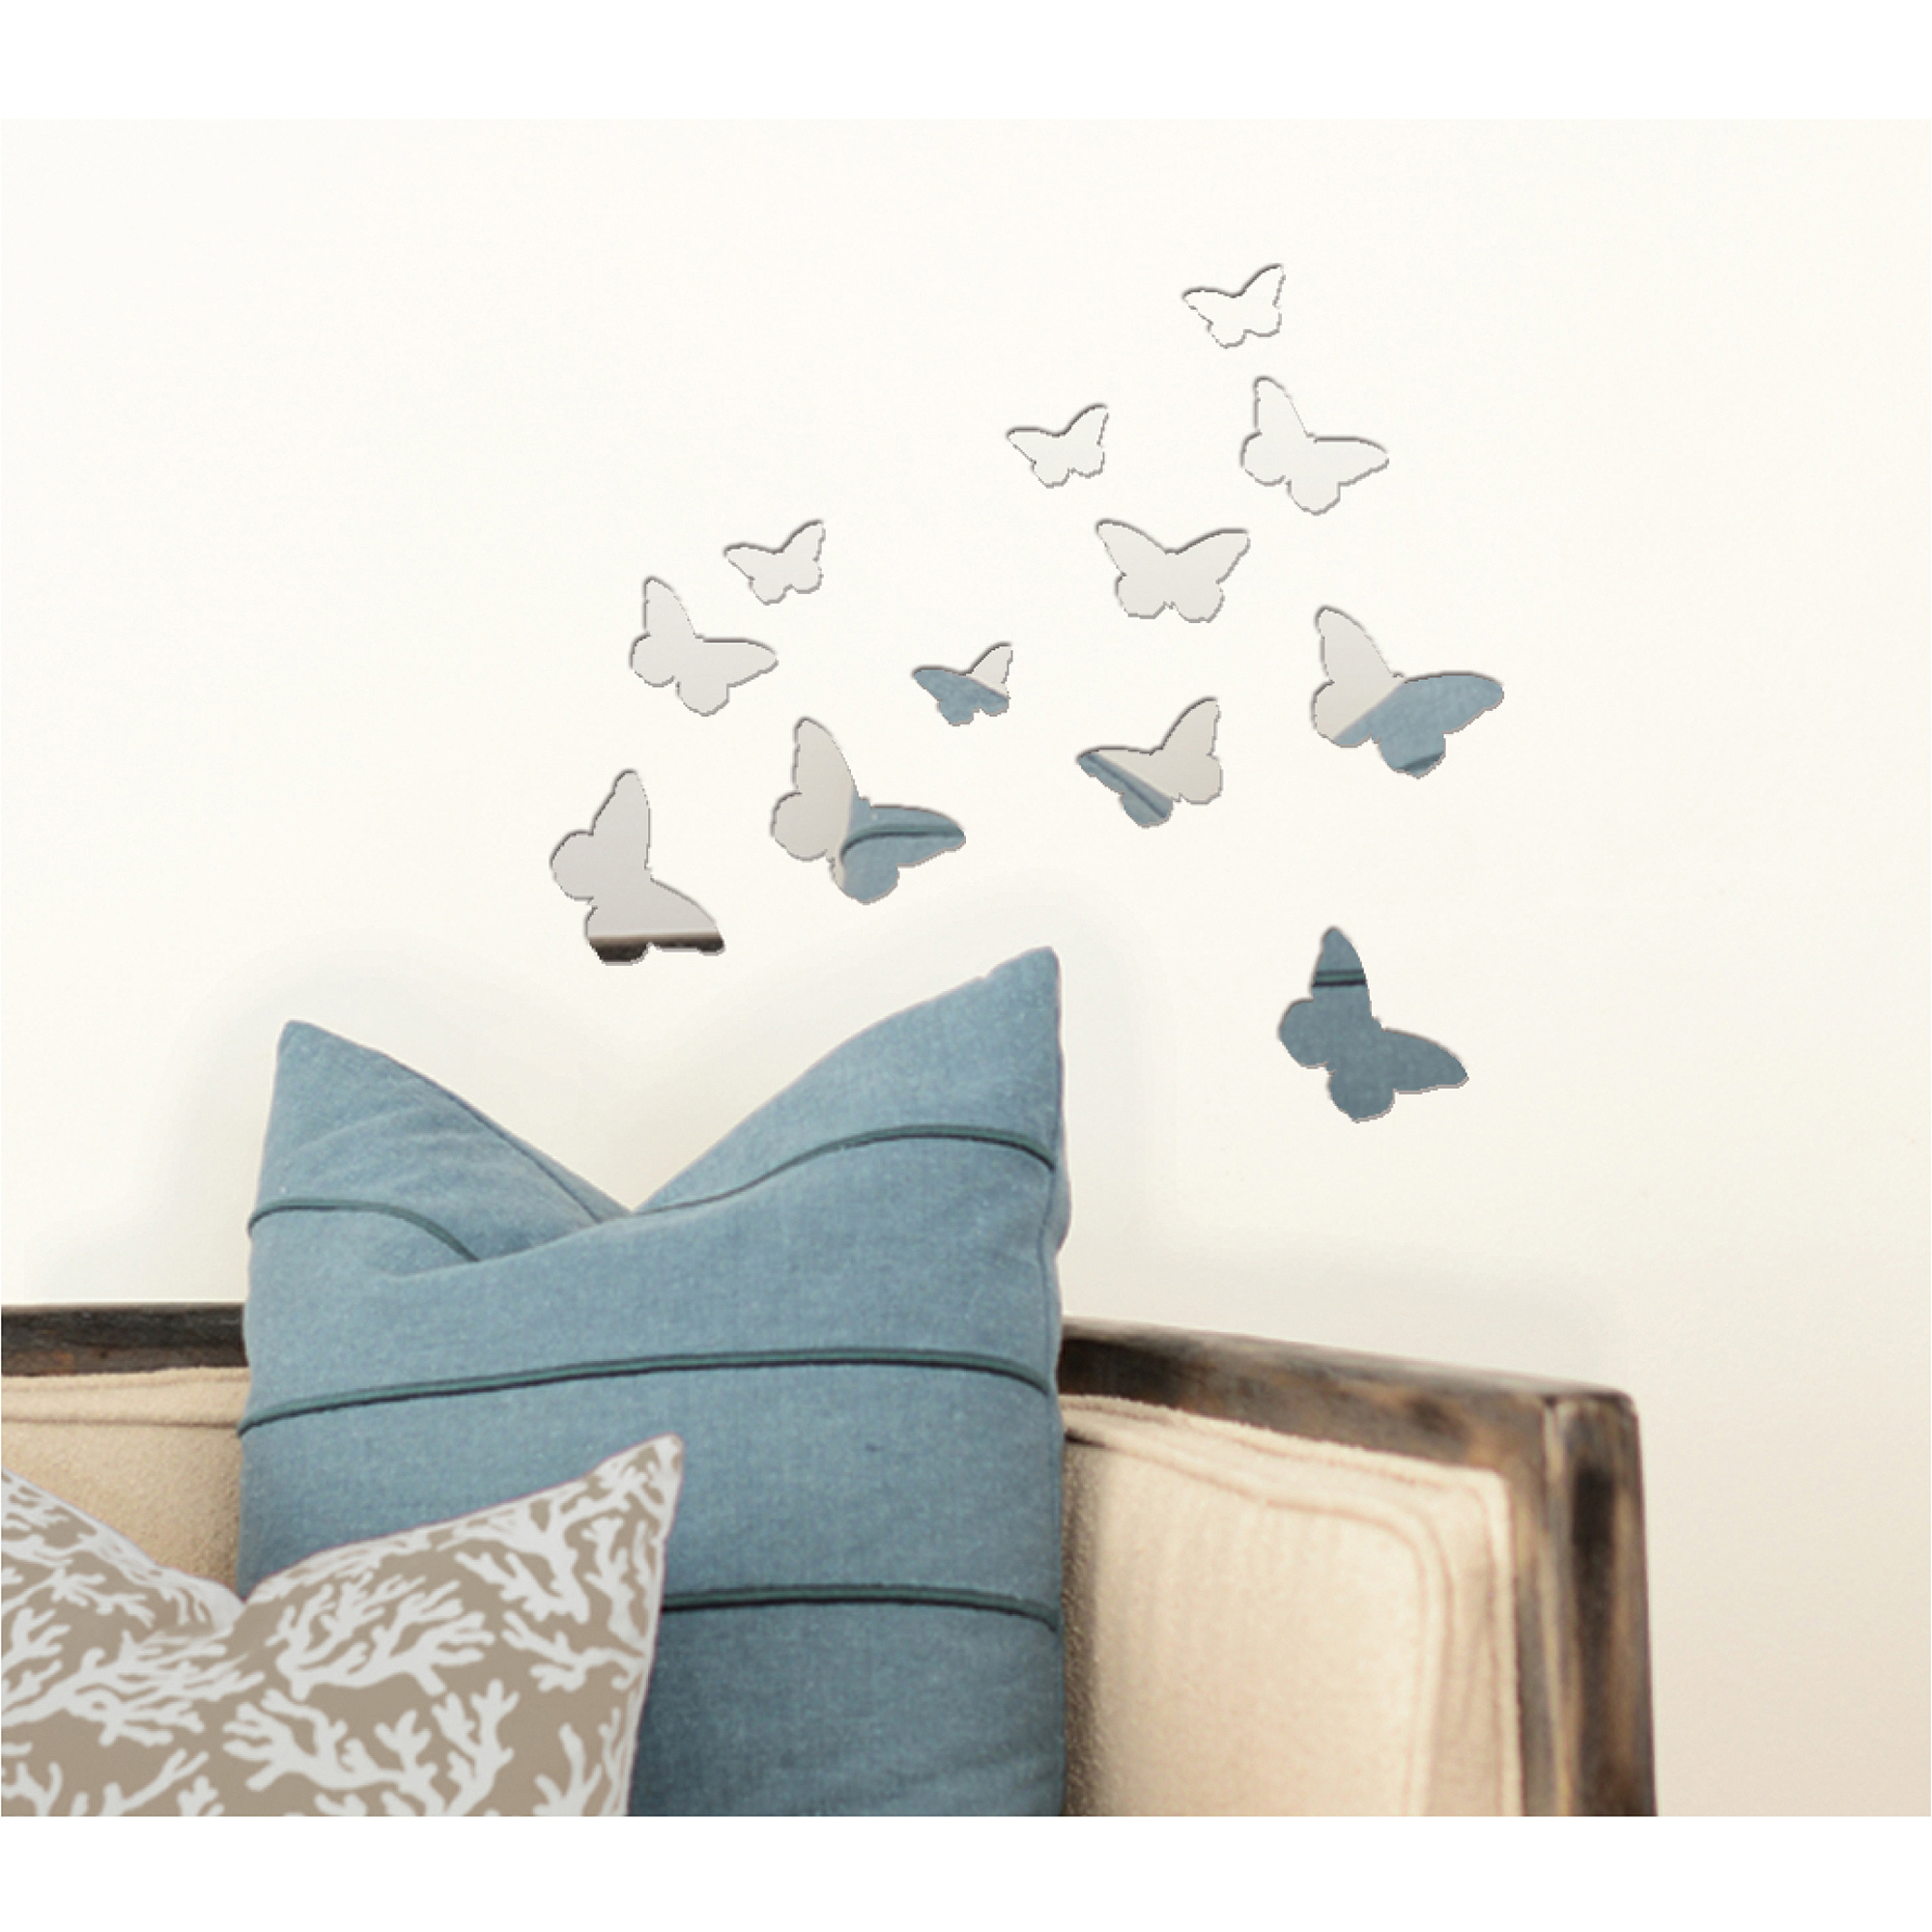 Pressed Petals Butterfly Mirror Decal